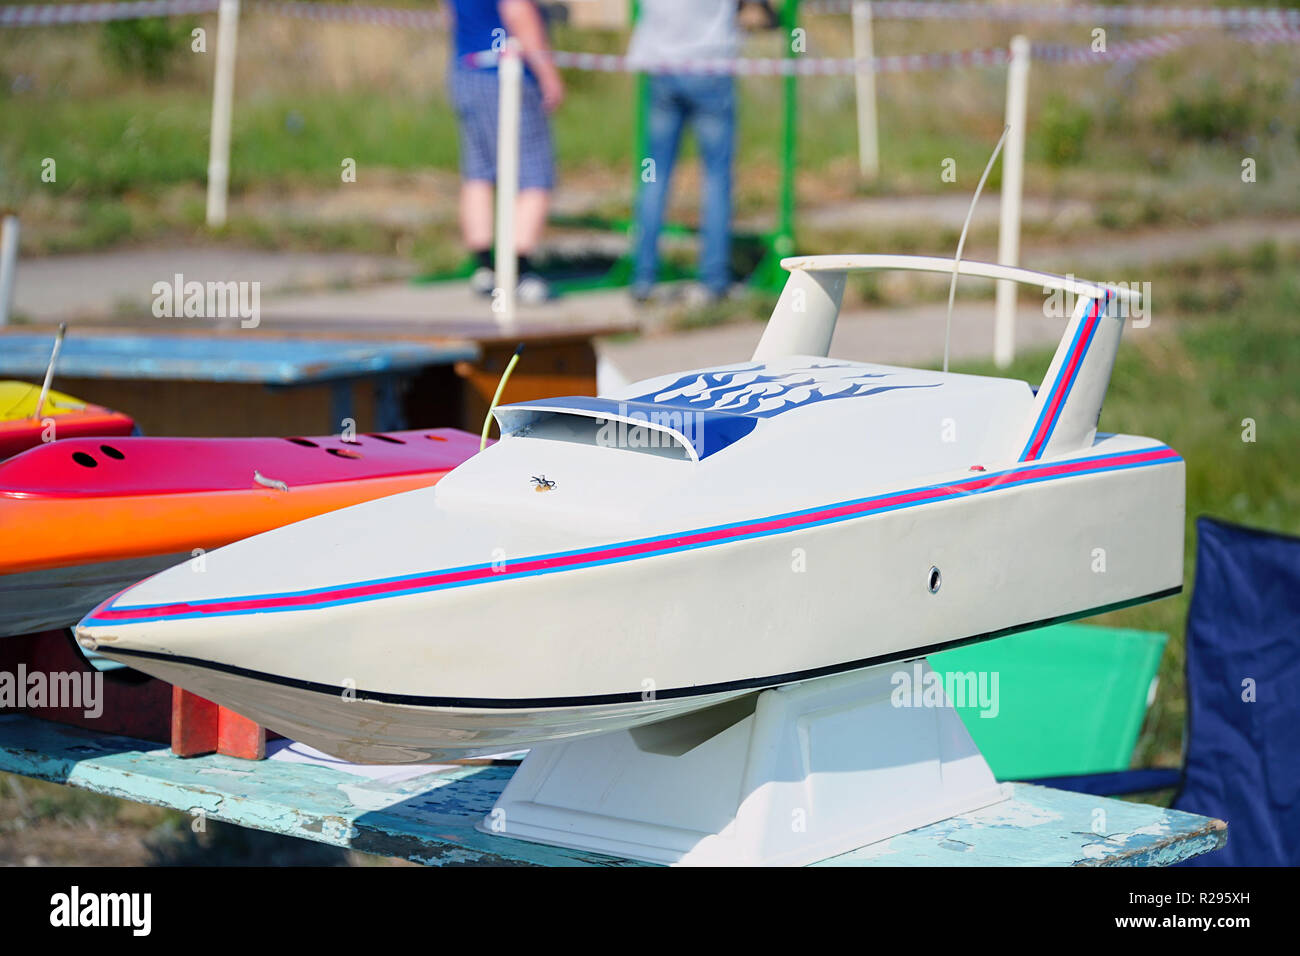 Modern toy model of radio-controlled boat - Stock Image